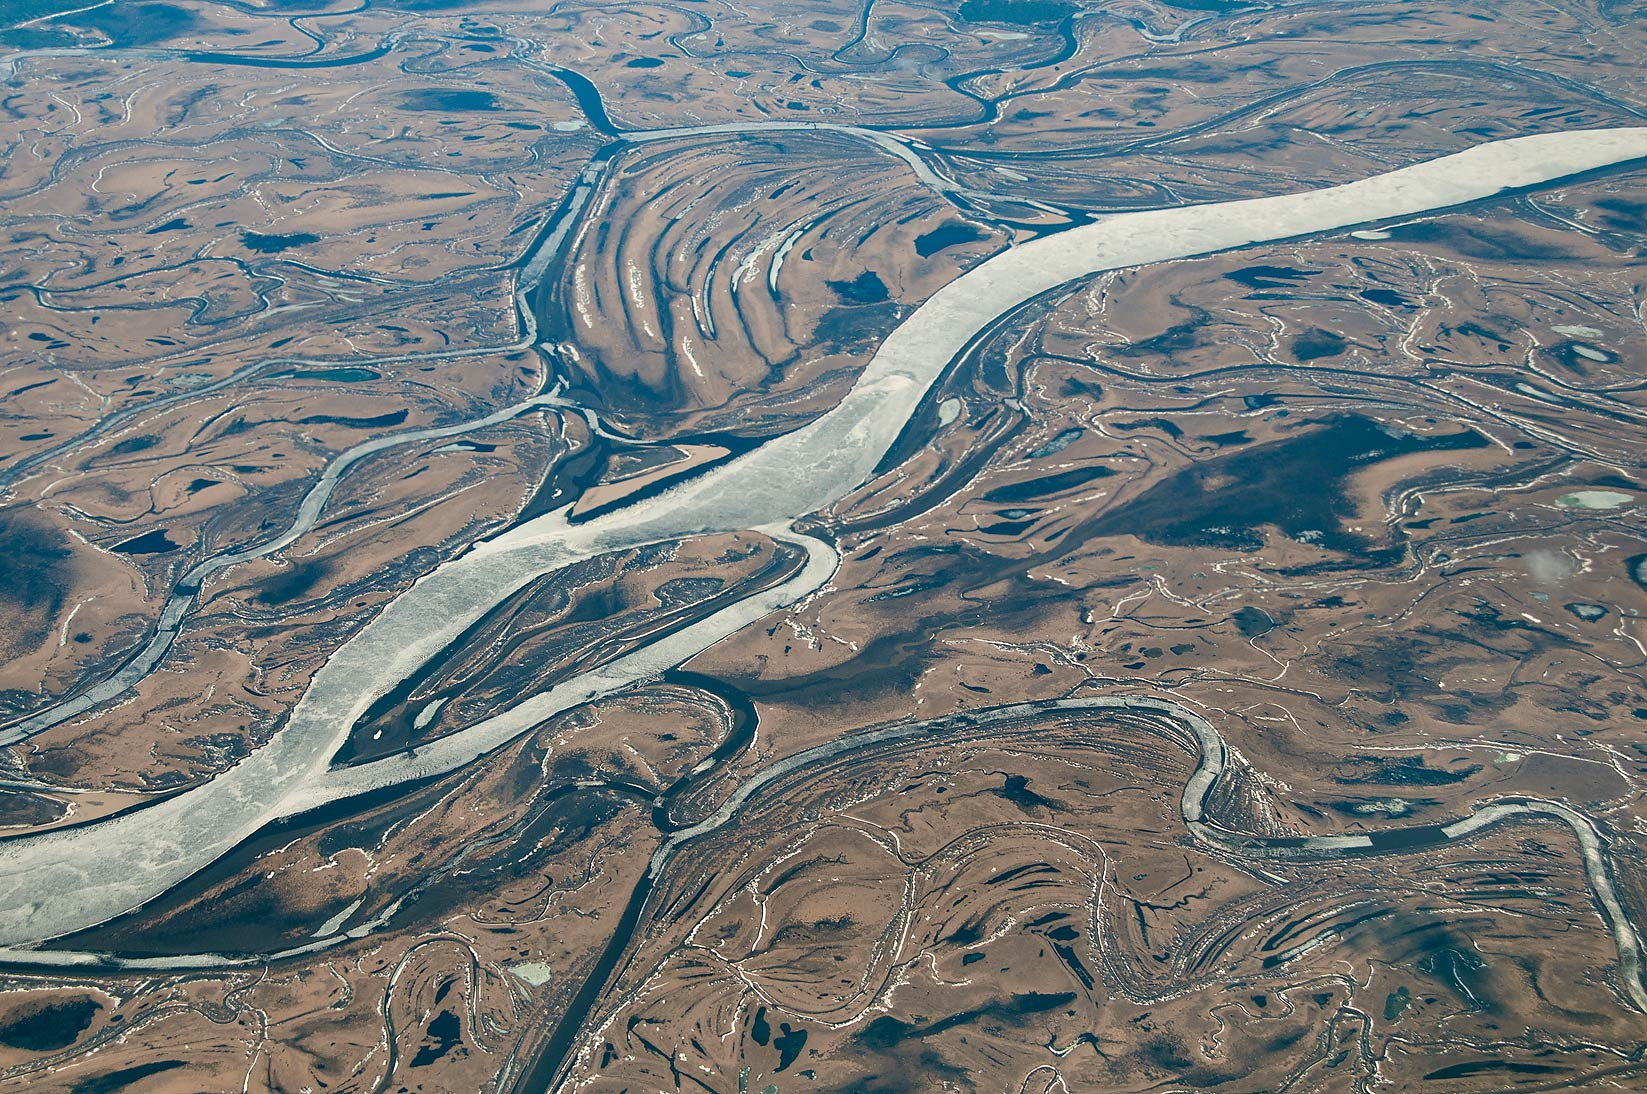 Ob River at Vort'egan in Siberia, Russia, south...a plane from Dubai, UAE to Houston, TX